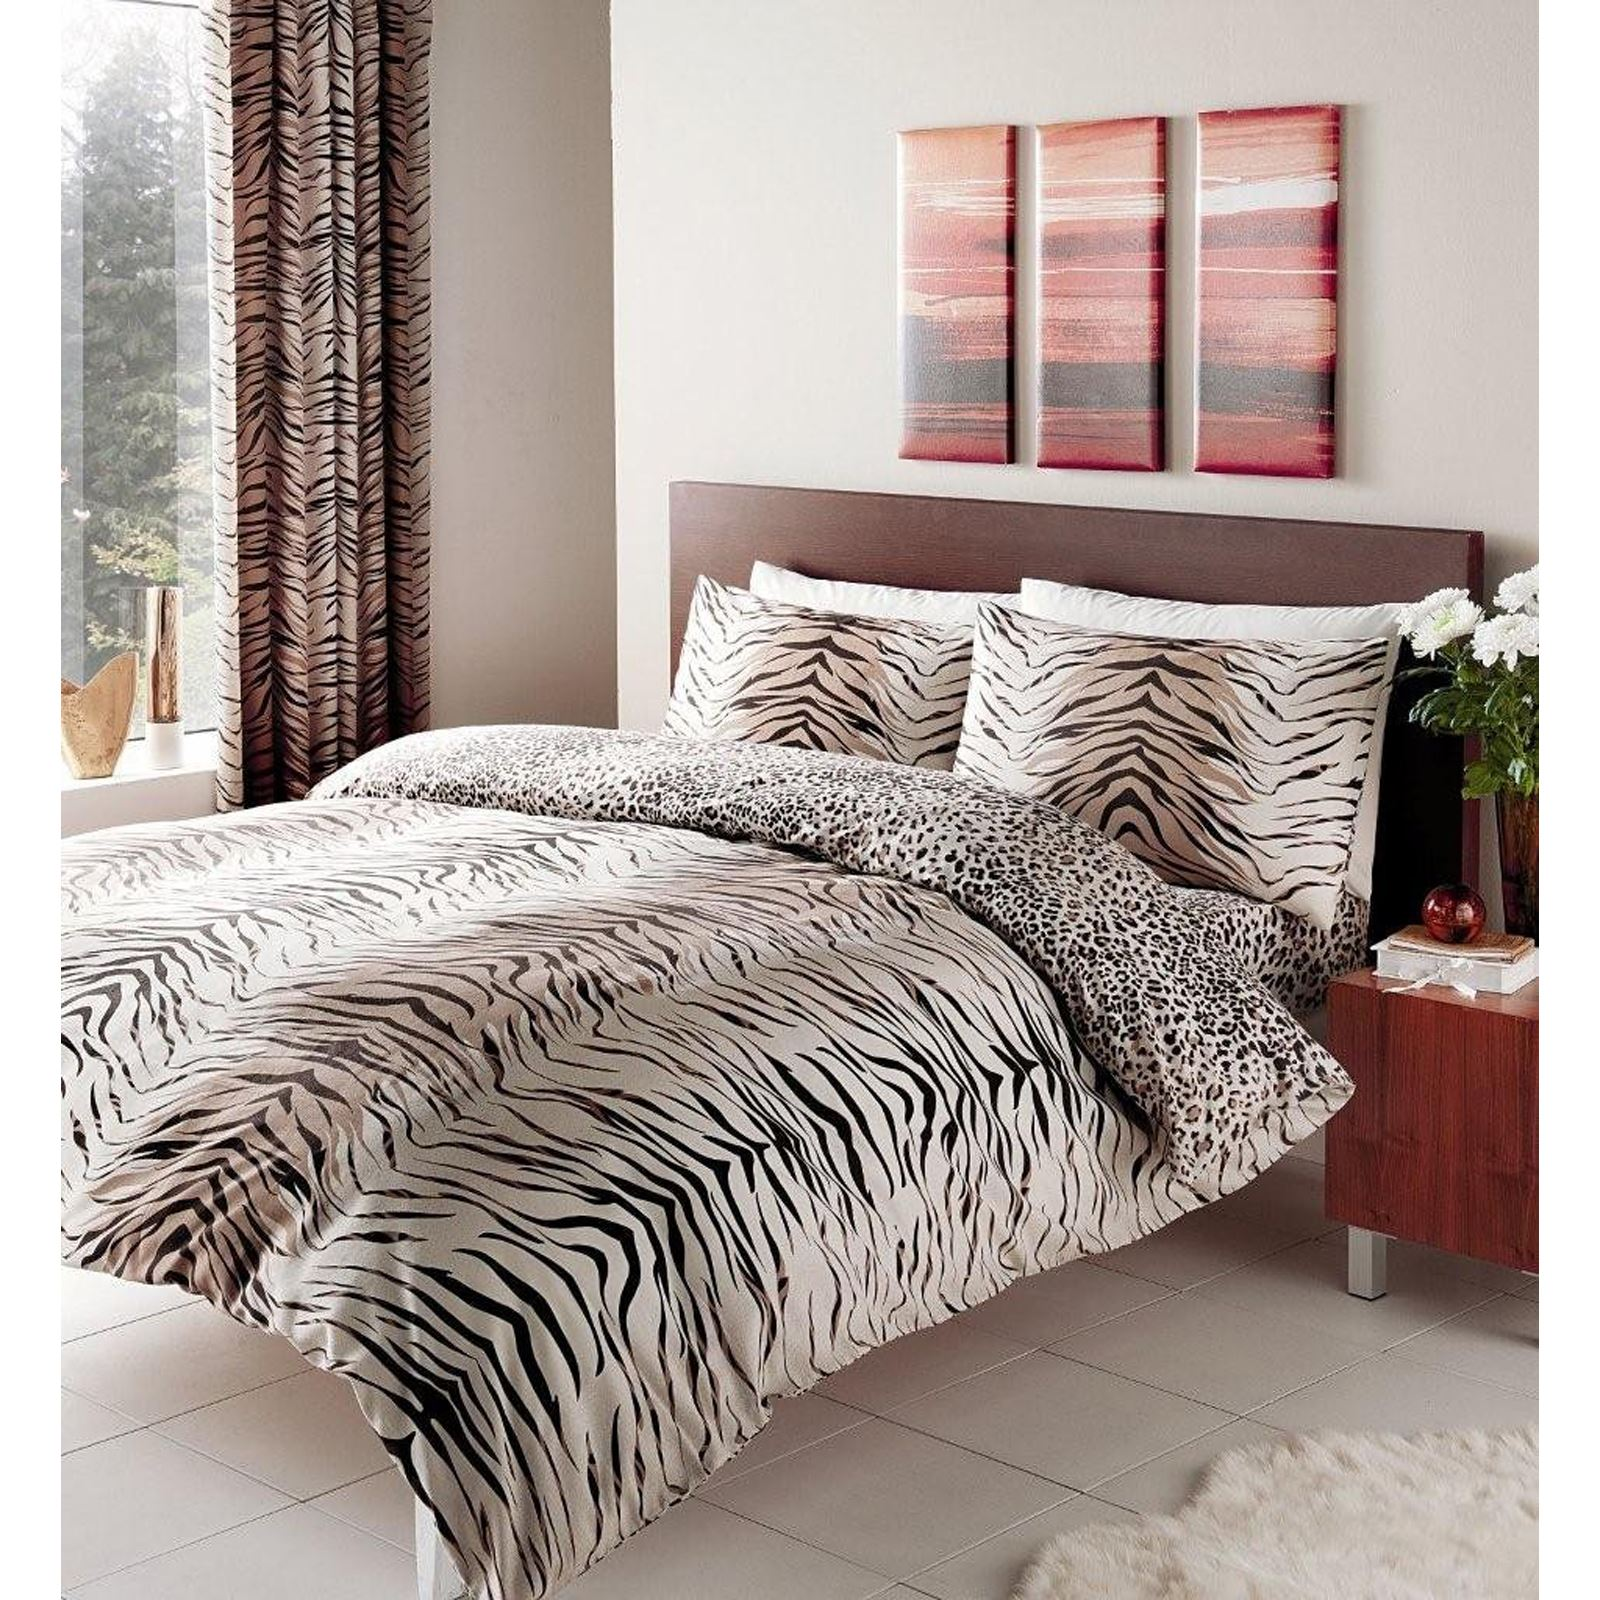 tiger leoparden druck reversible bettw sche sets in. Black Bedroom Furniture Sets. Home Design Ideas